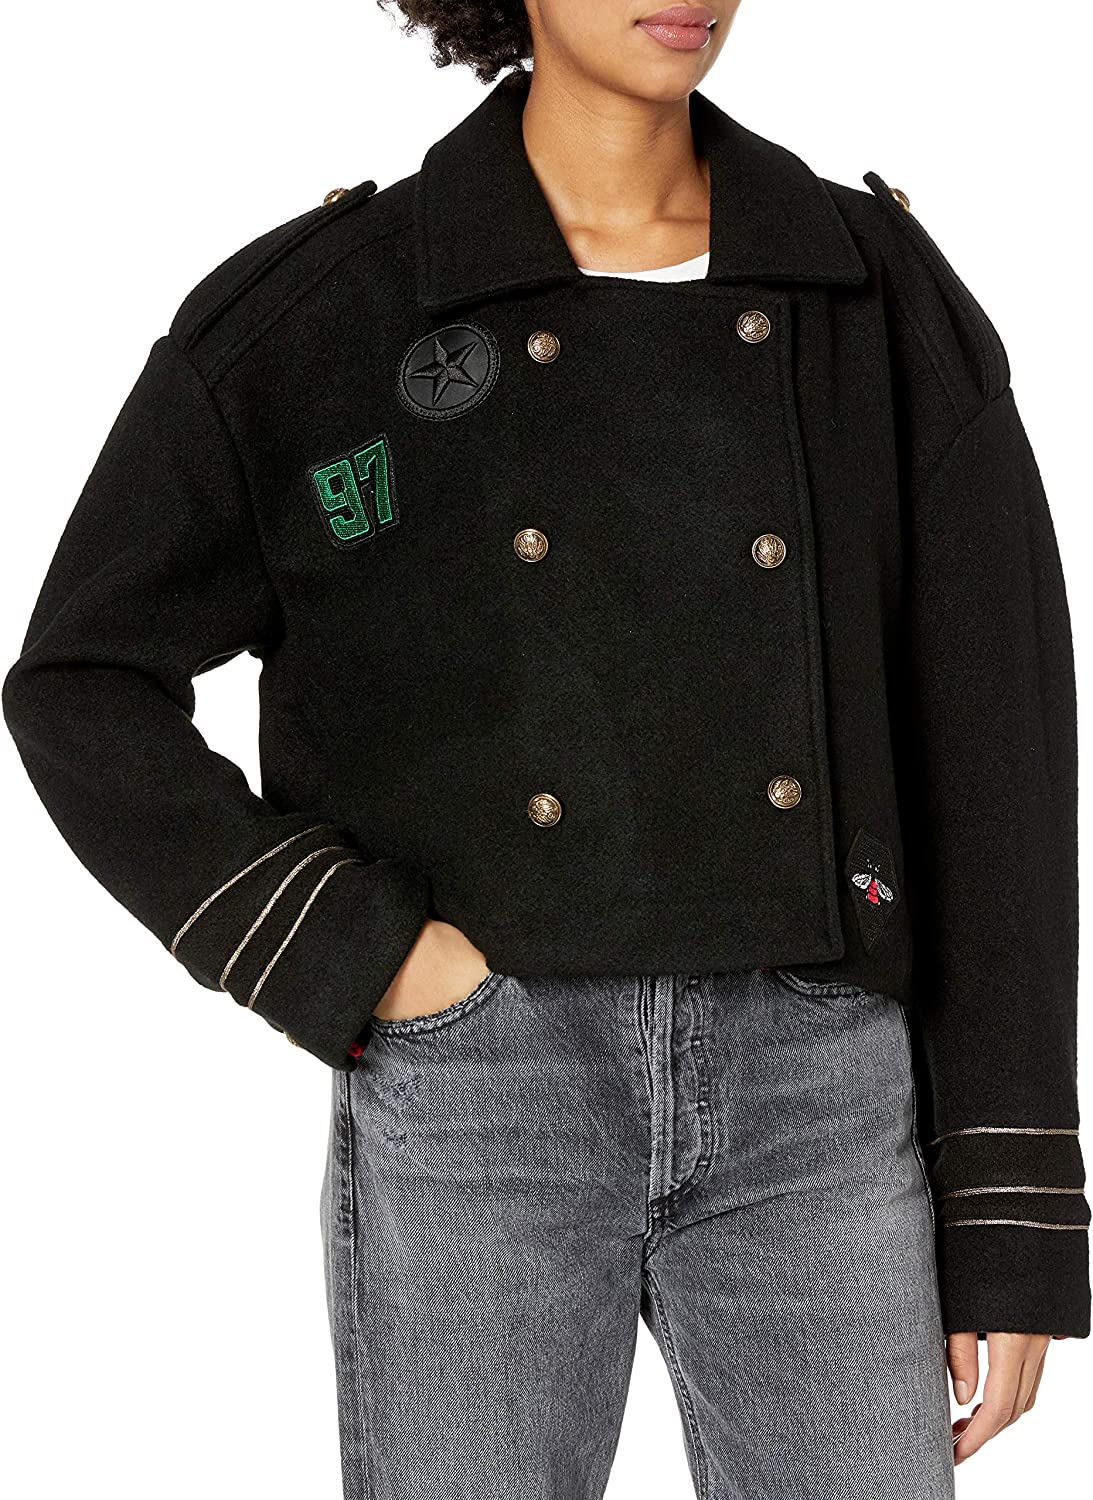 Ranking TOP4 BLANKNYC womens Jacket Military Max 66% OFF